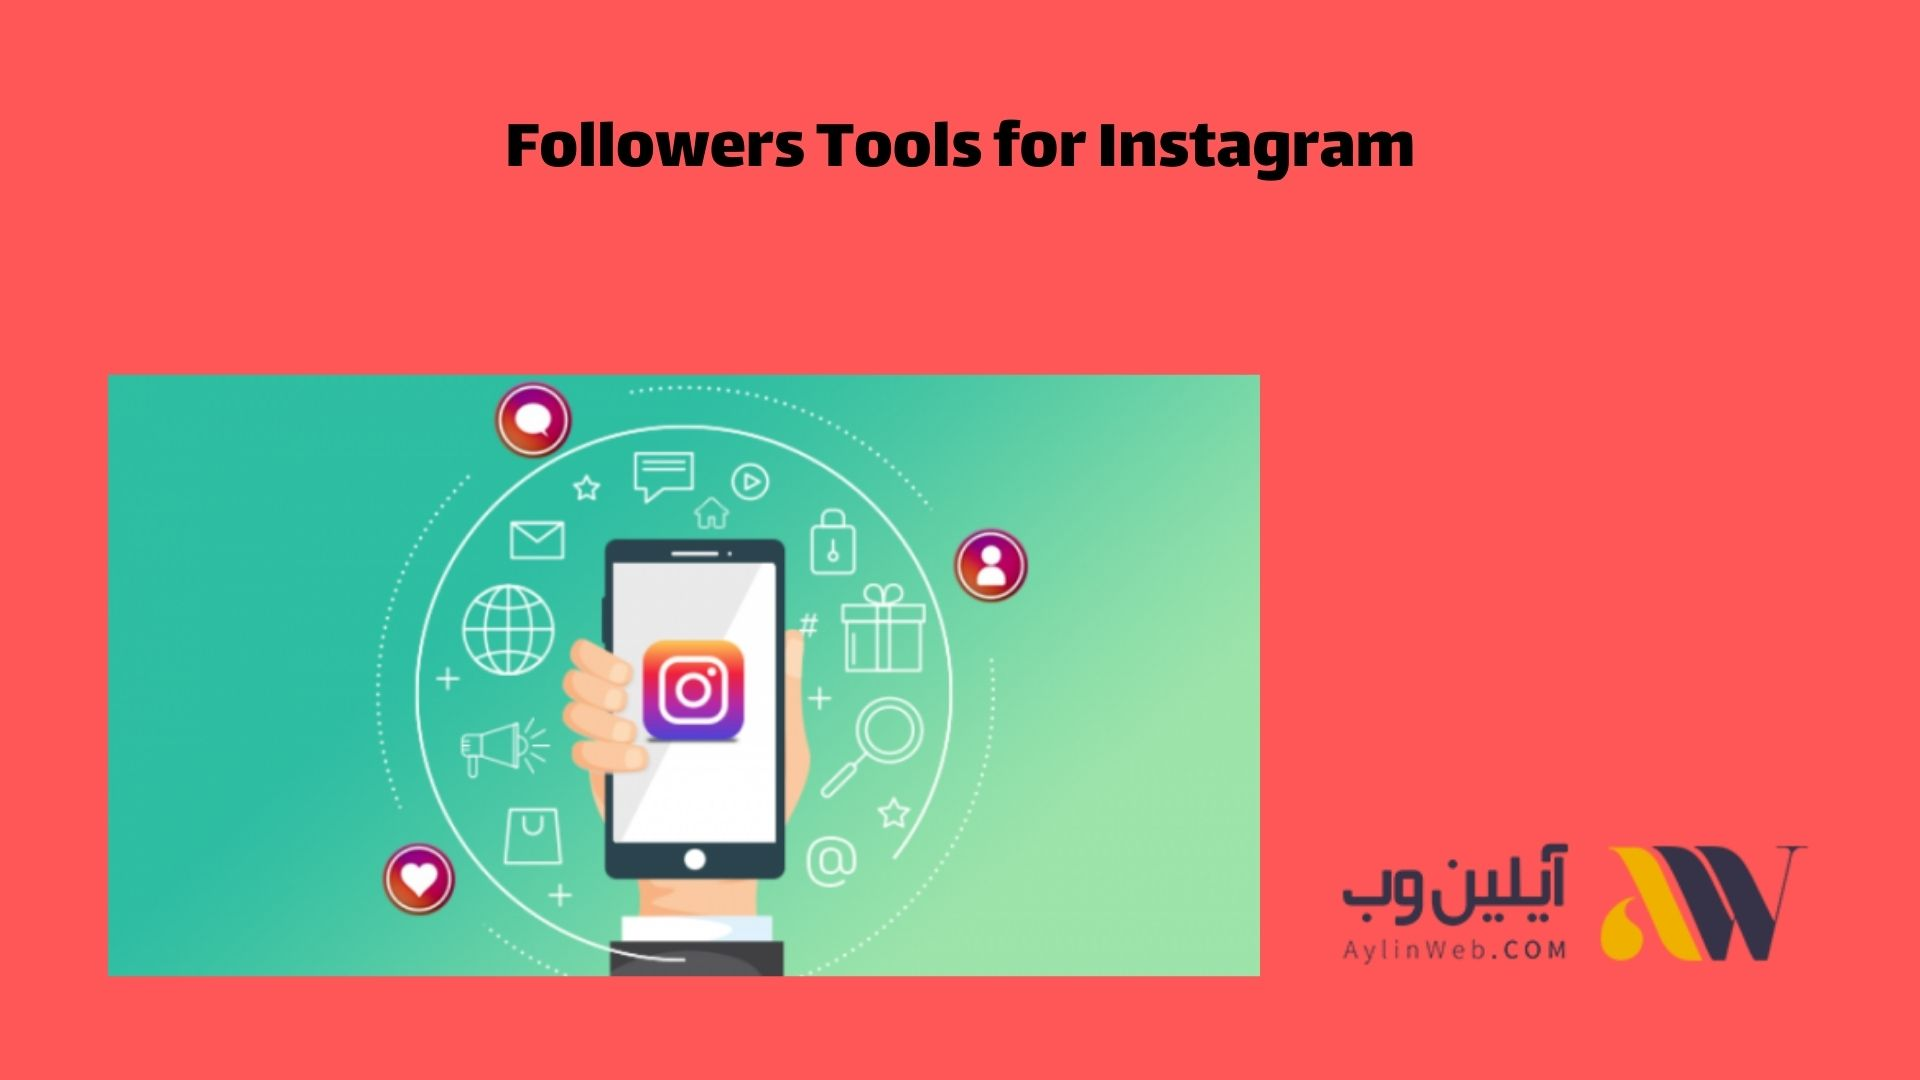 Followers Tools for Instagram